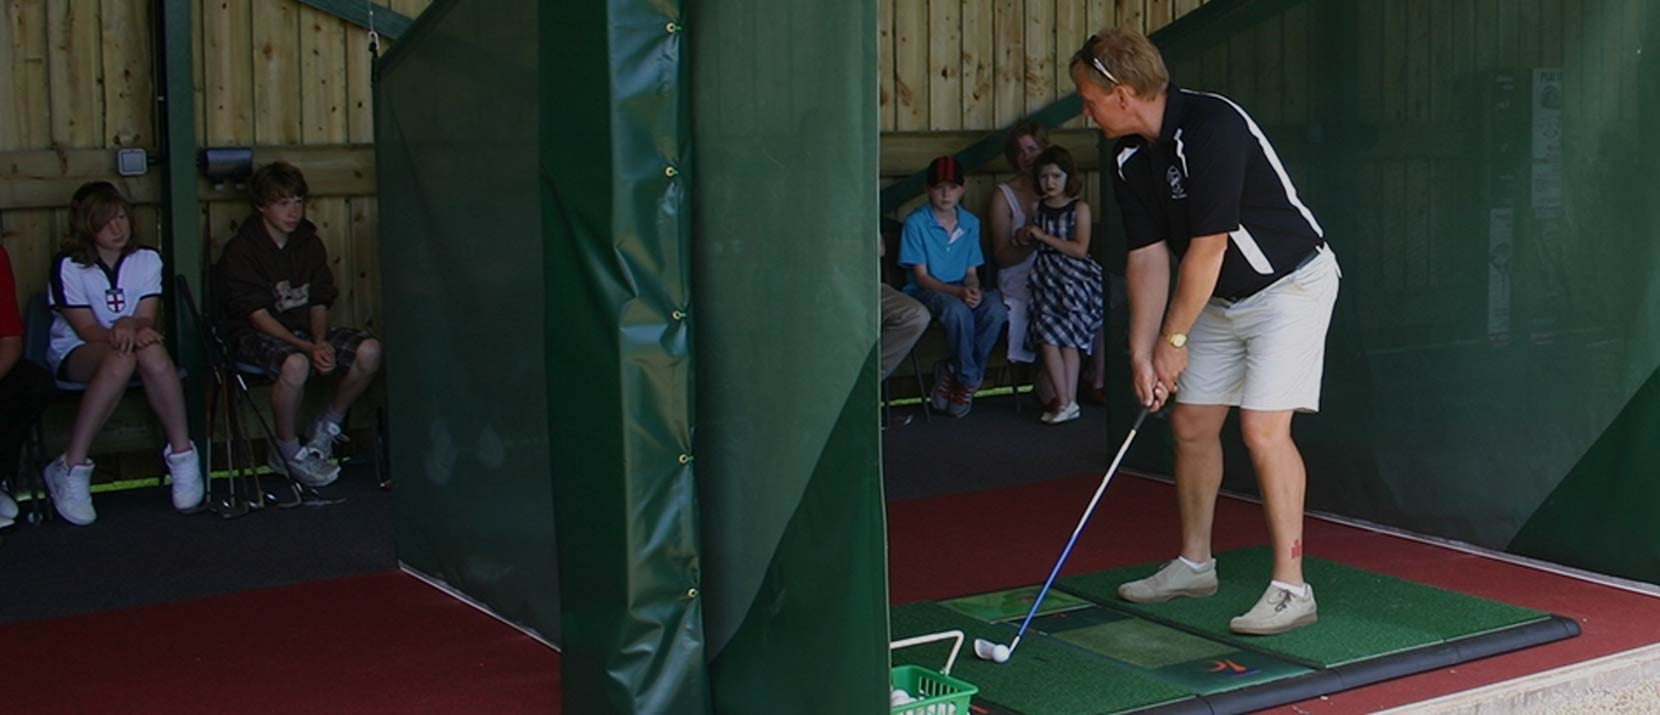 Sturminster Marshall Golf Club - Mike Dodd Golf Academy